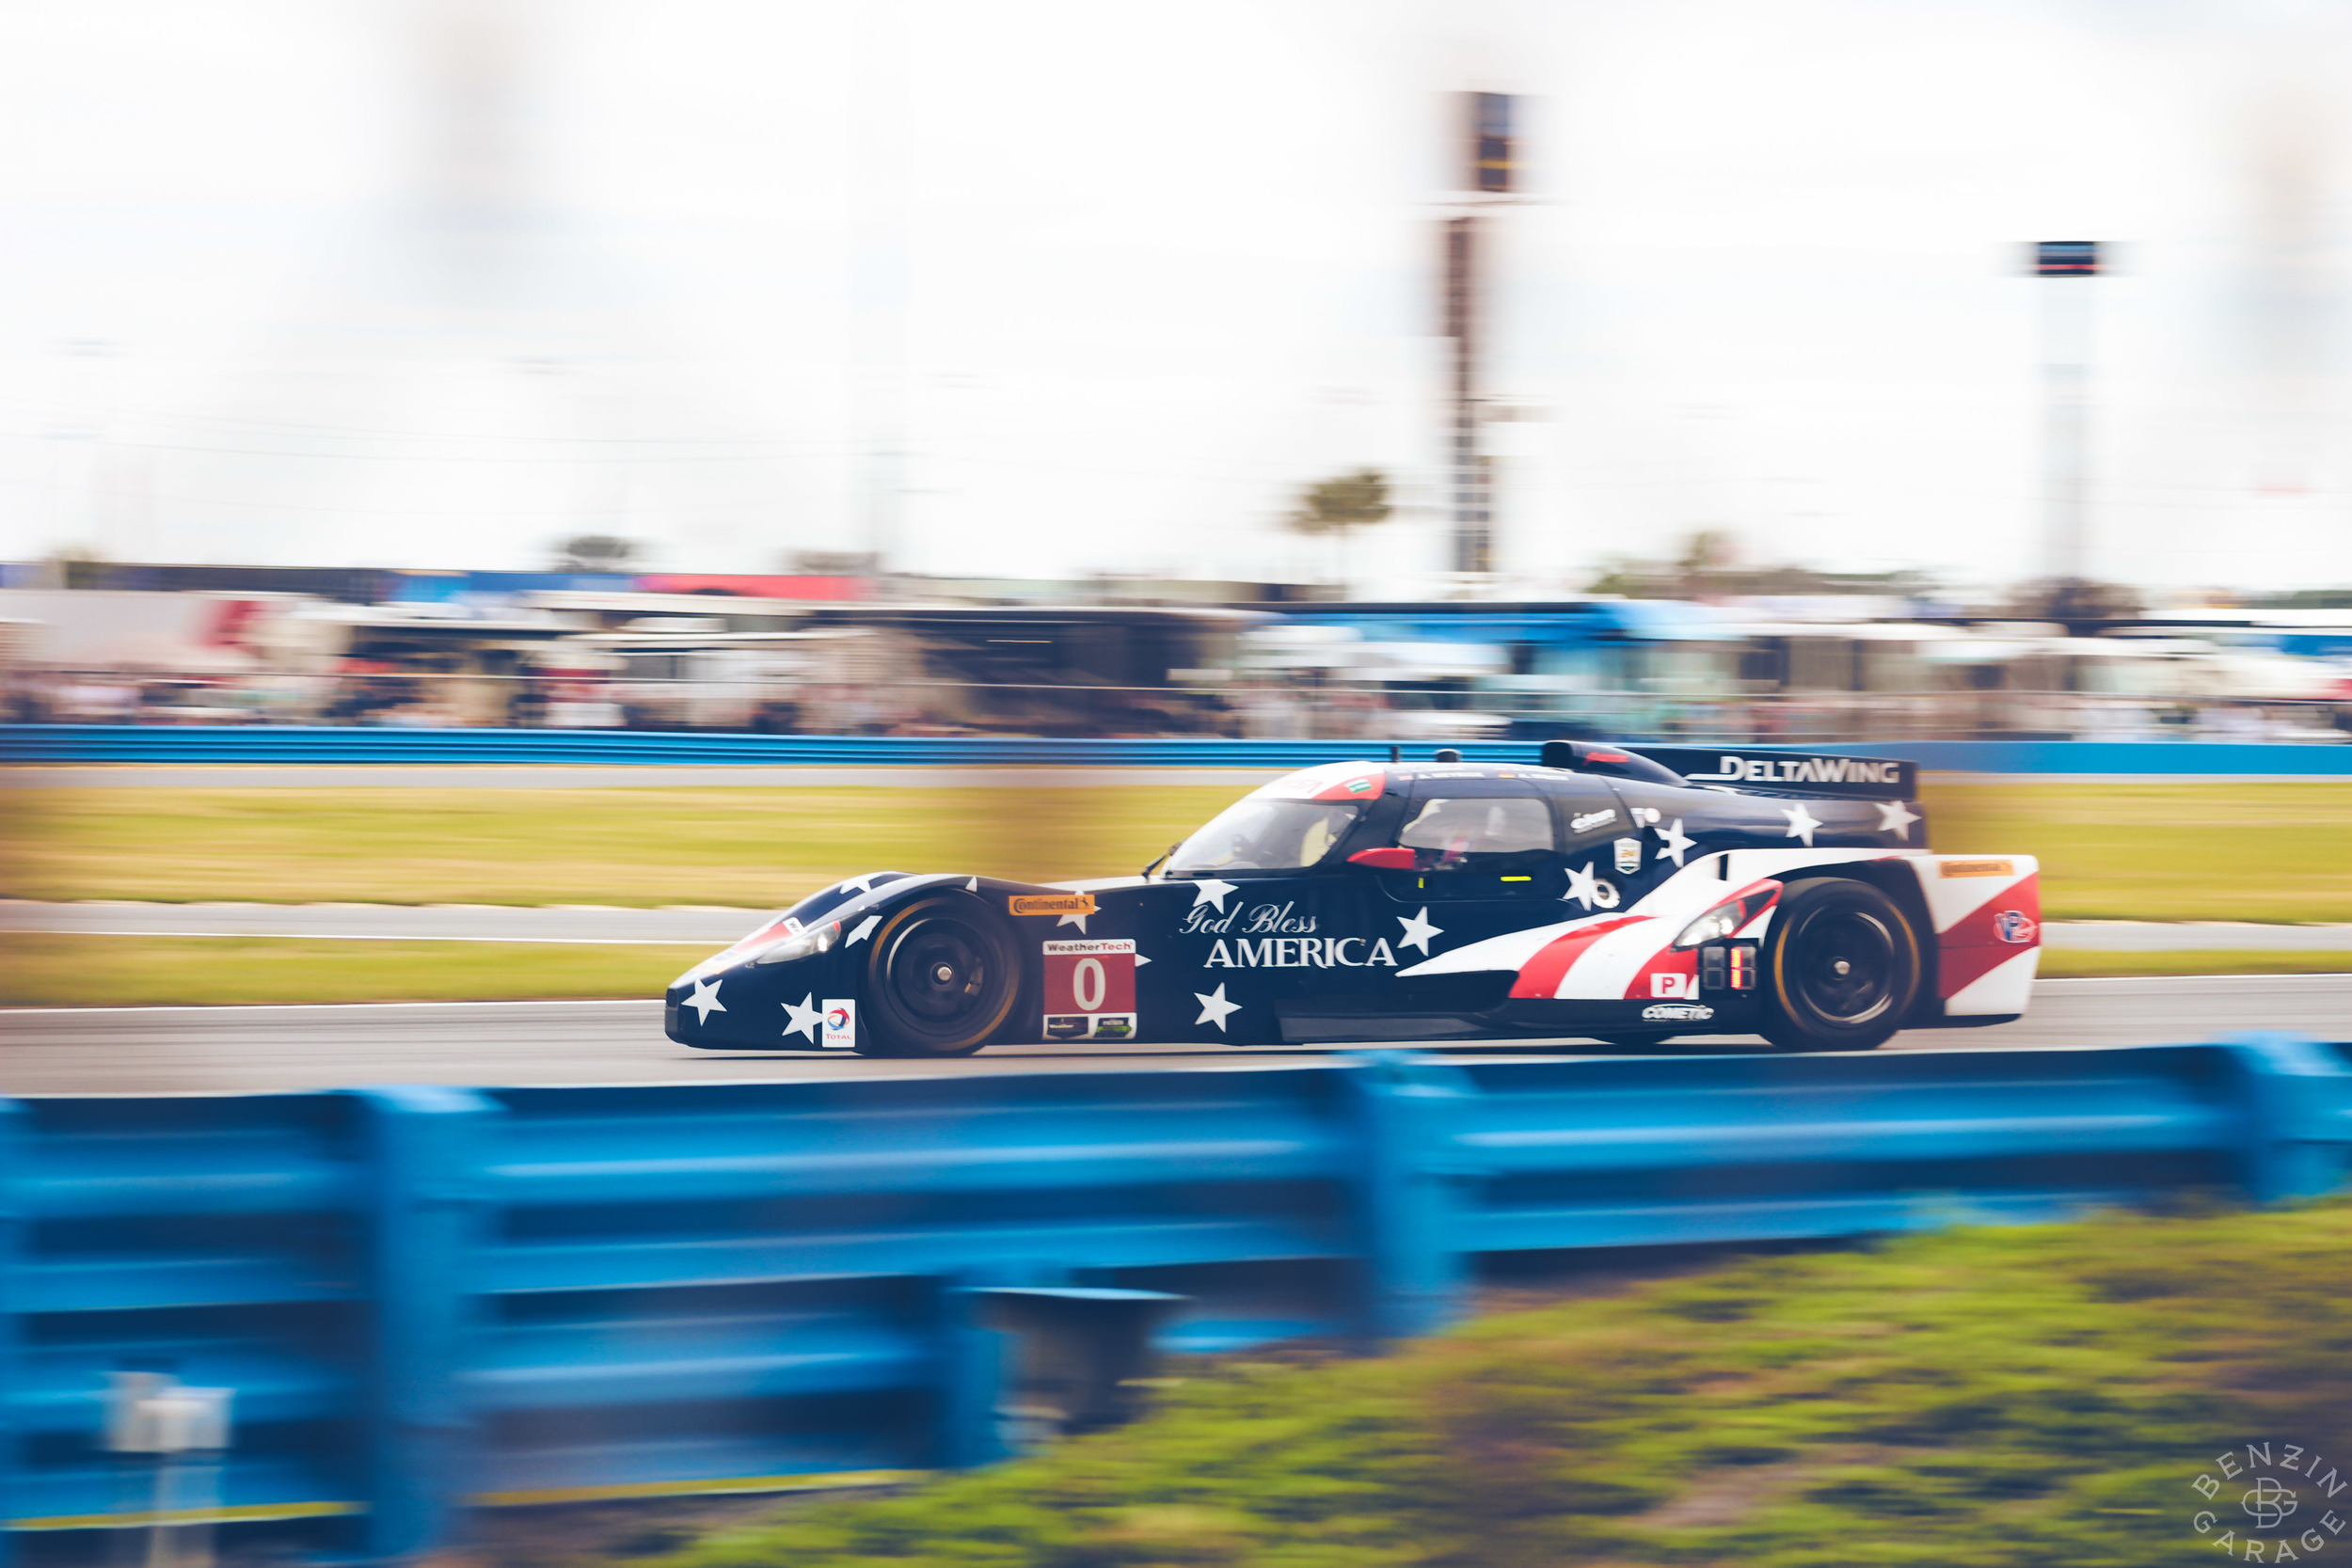 I can't believe I'm saying this, but the DeltaWing had me a little worried...